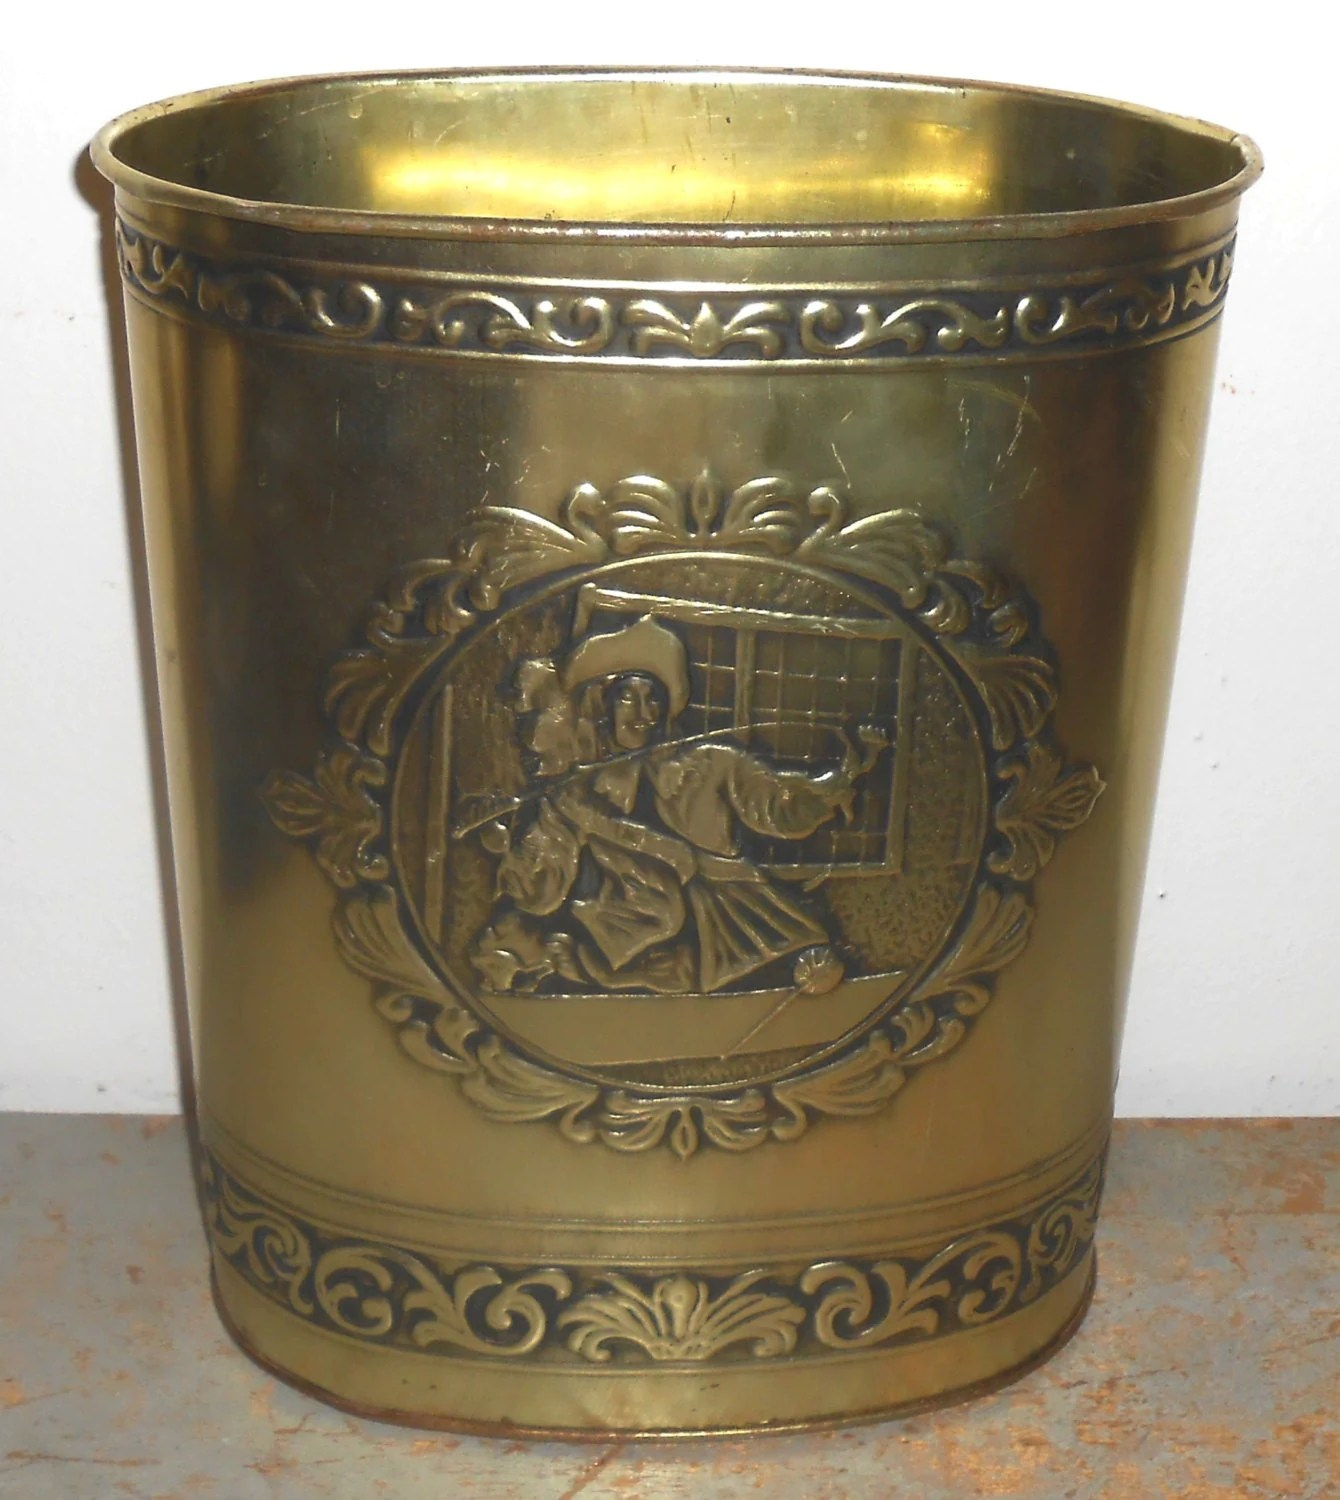 Decorative Metal Waste Baskets Vintage Trash Can Wiebro Brass Colonialtrash Bin Waste